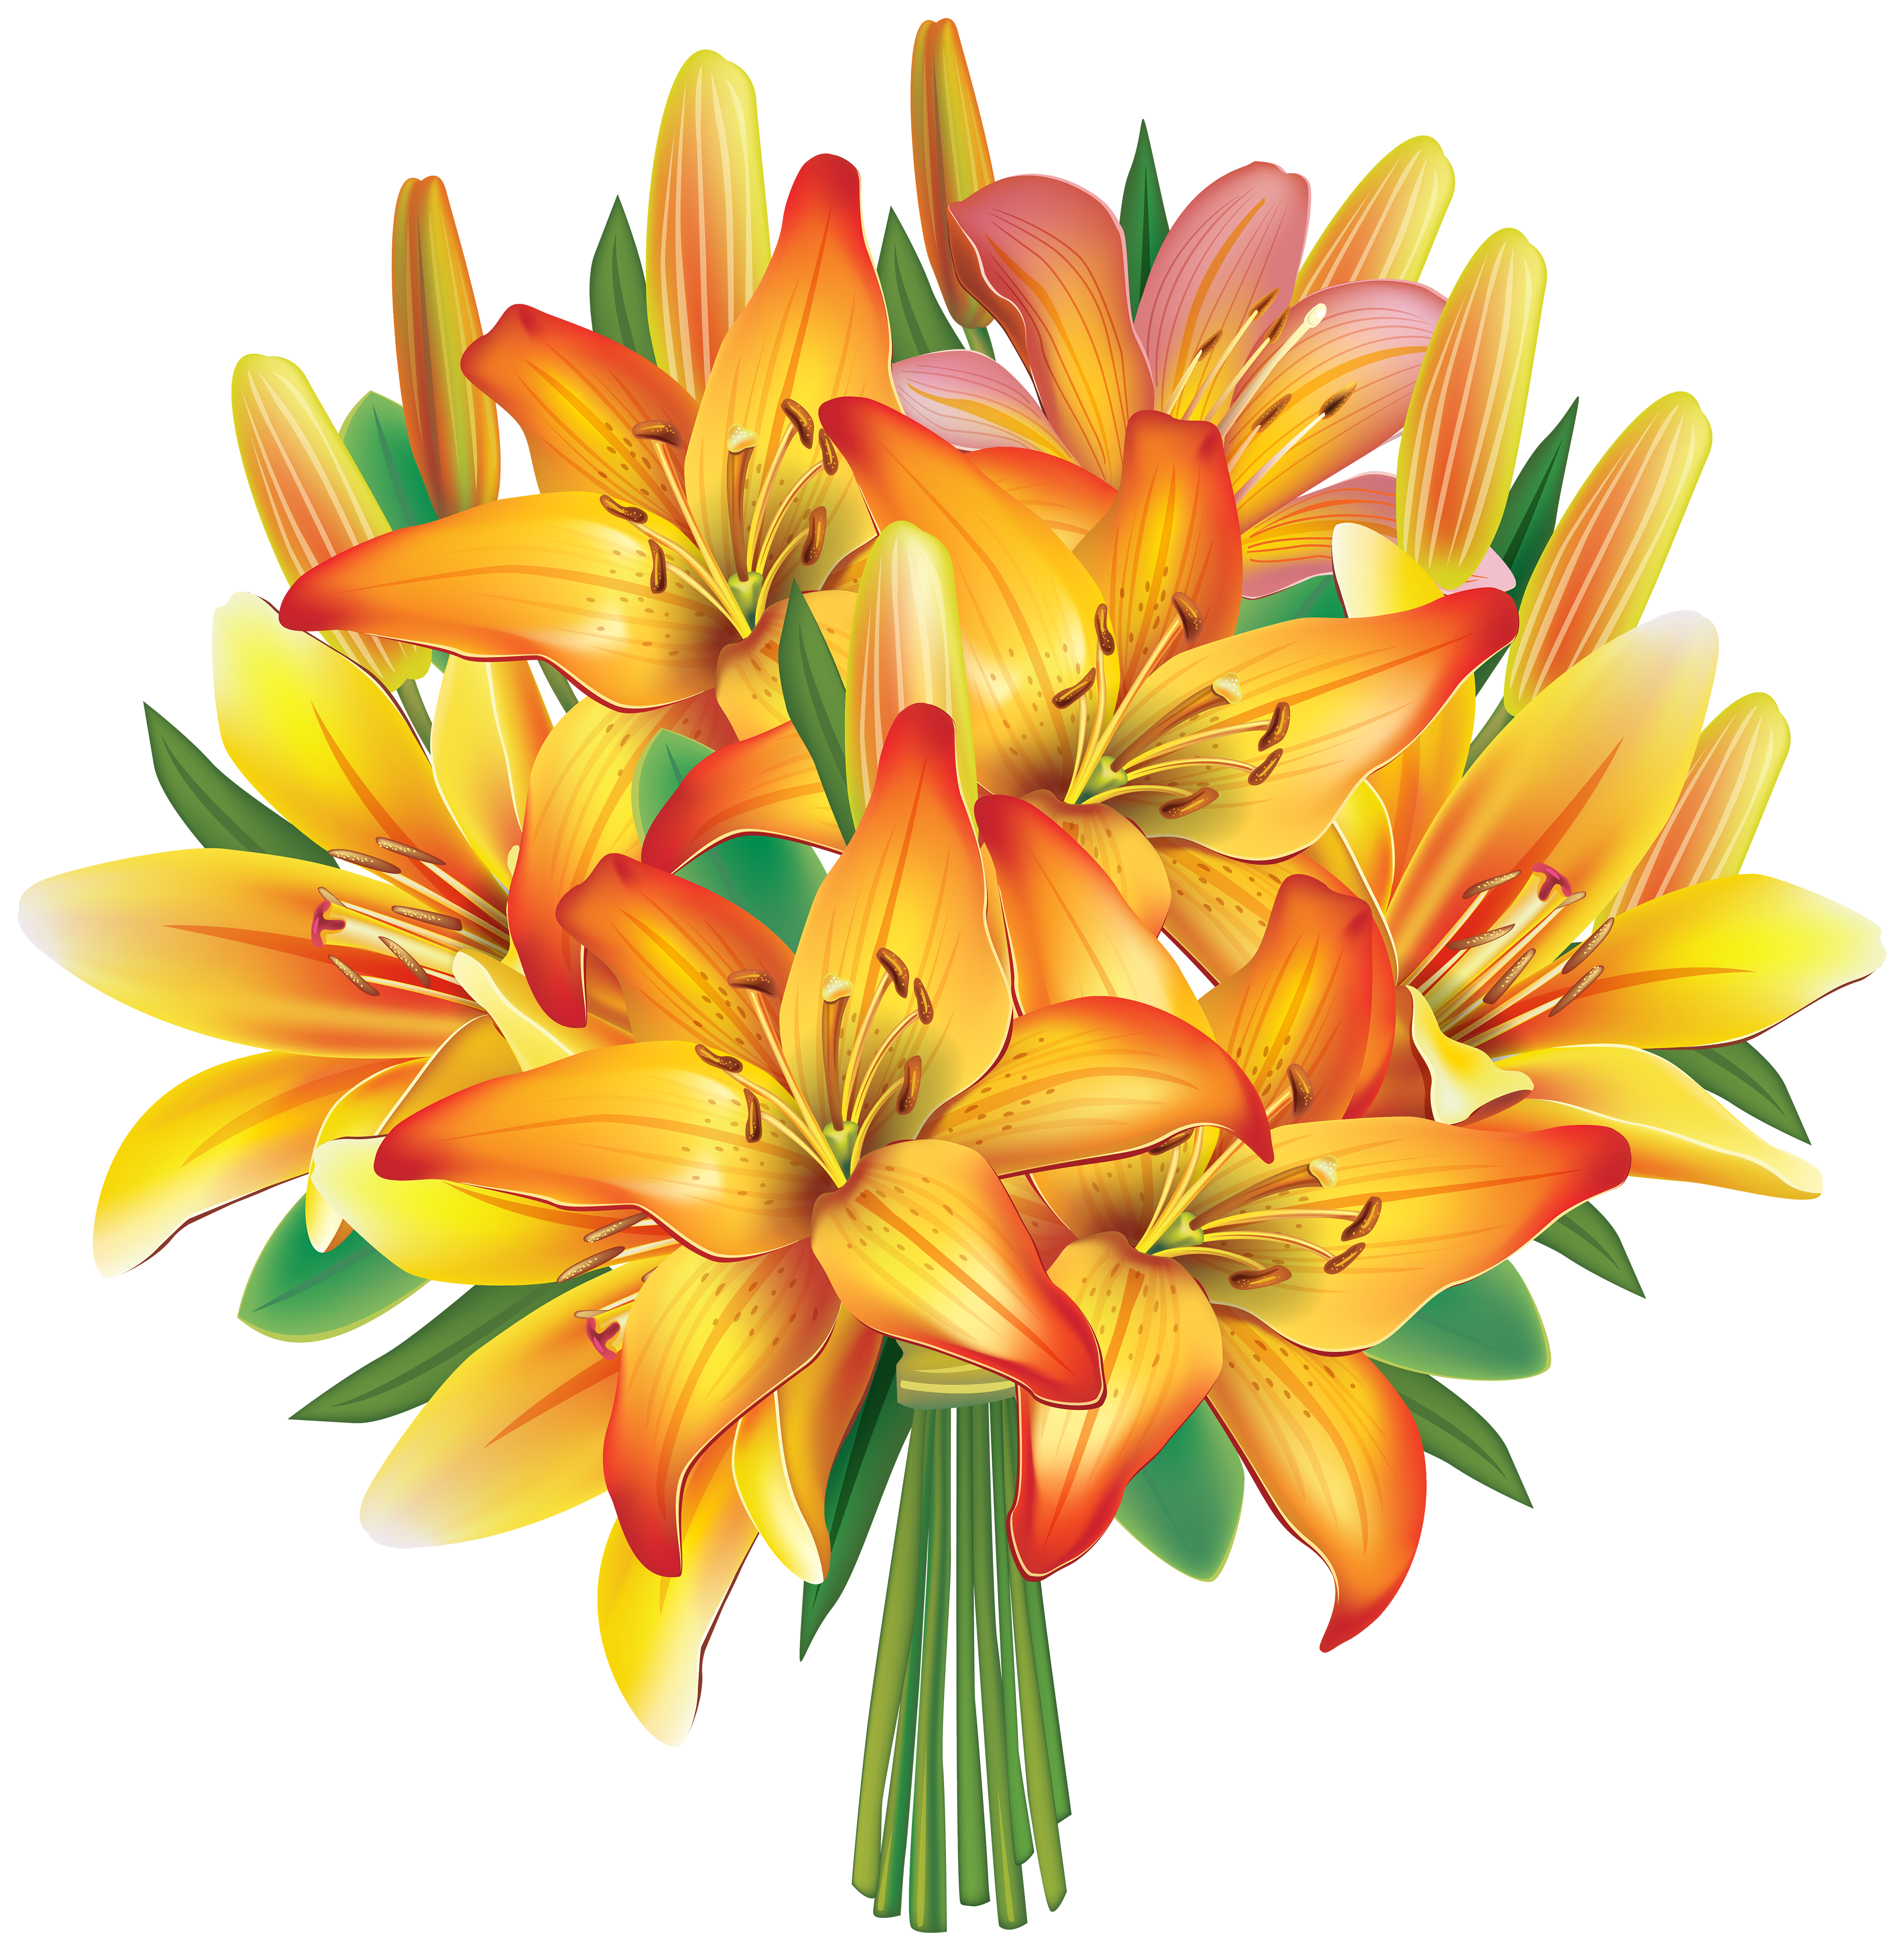 Lily Flower Clipart   Free download on ClipArtMag